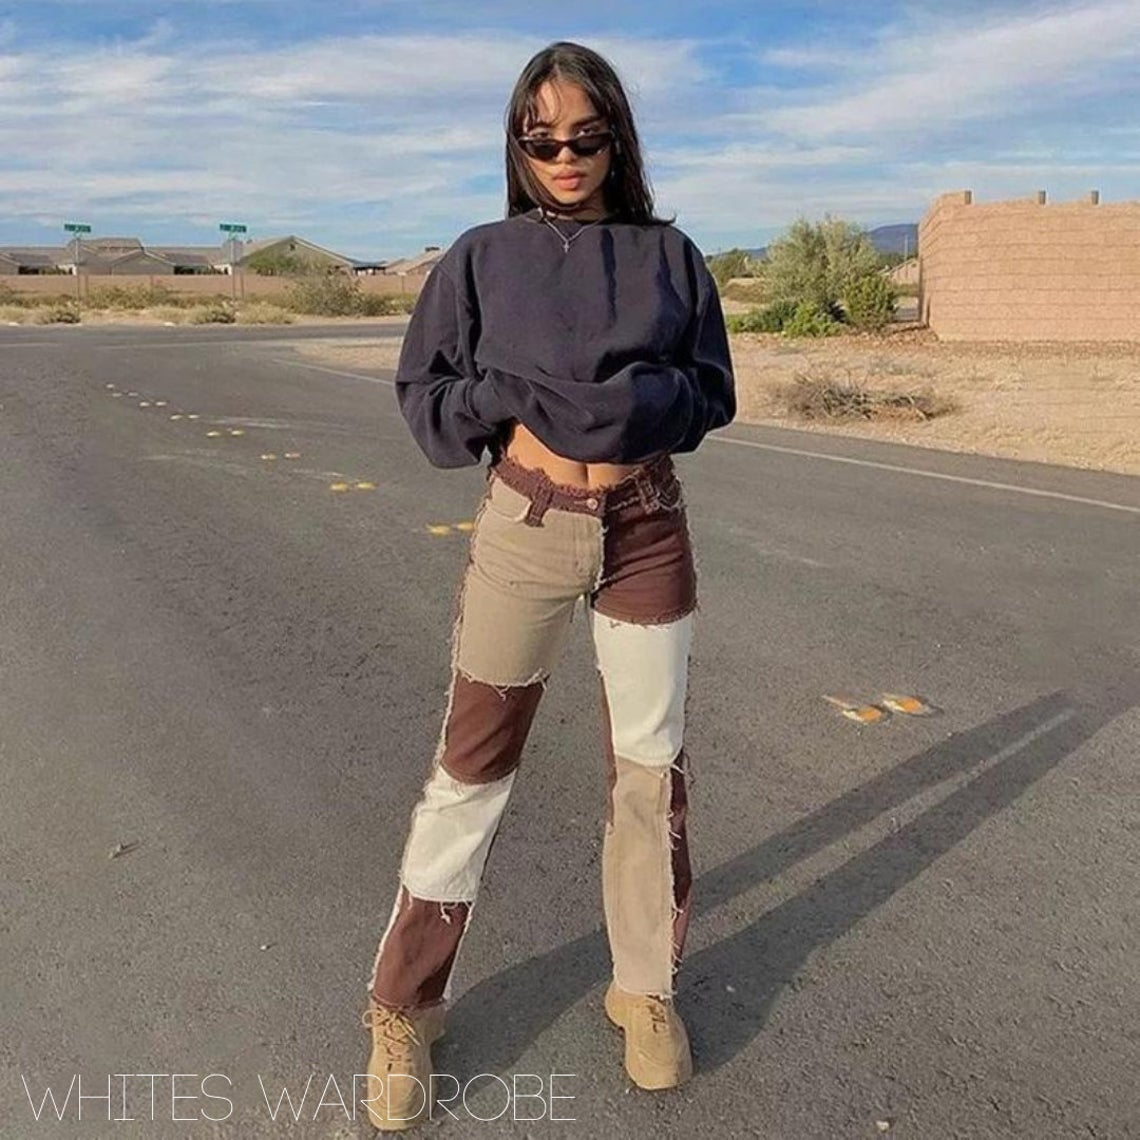 Brown Patchwork Jeans - frayed patch hem bottoms - tan white straight y2k wide leg trousers - beige - high waist jeans - burgandy